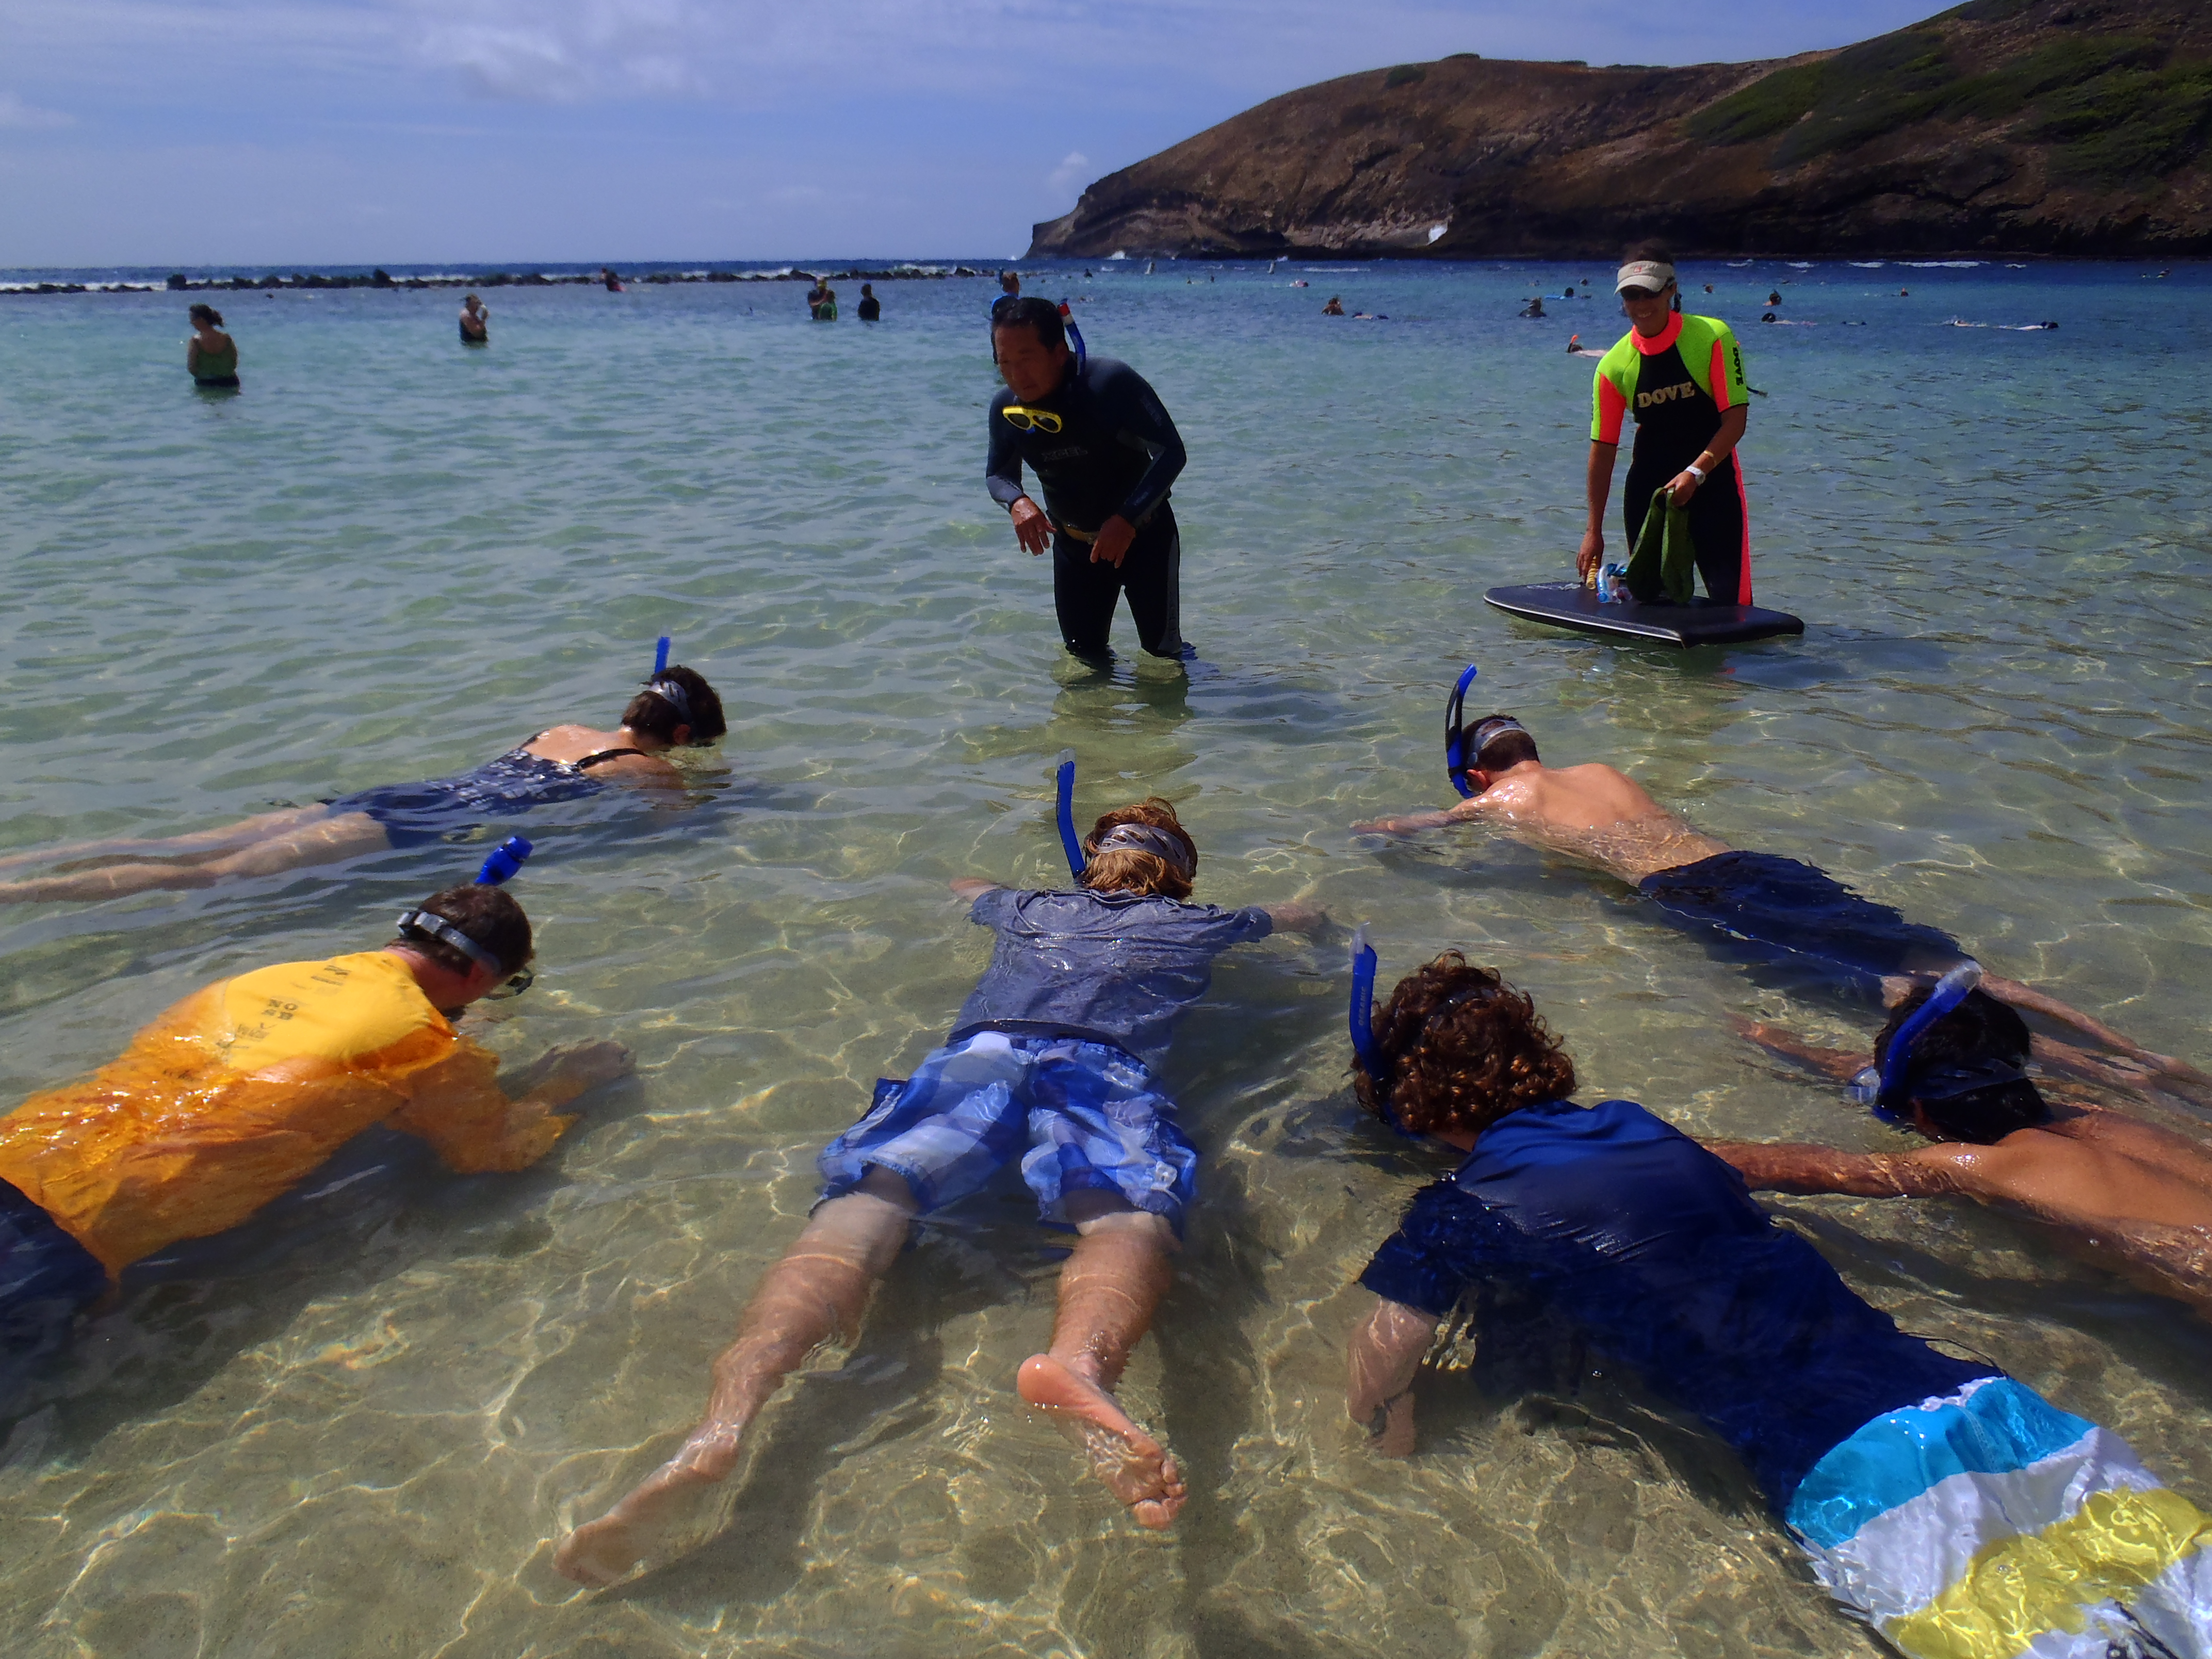 <p>Alan Hong teaches people how to snorkel at Hanauma Bay, where being male, in your 50s or 60s, and havingpre-existing heart conditions are common traits among drowning victims.</p>